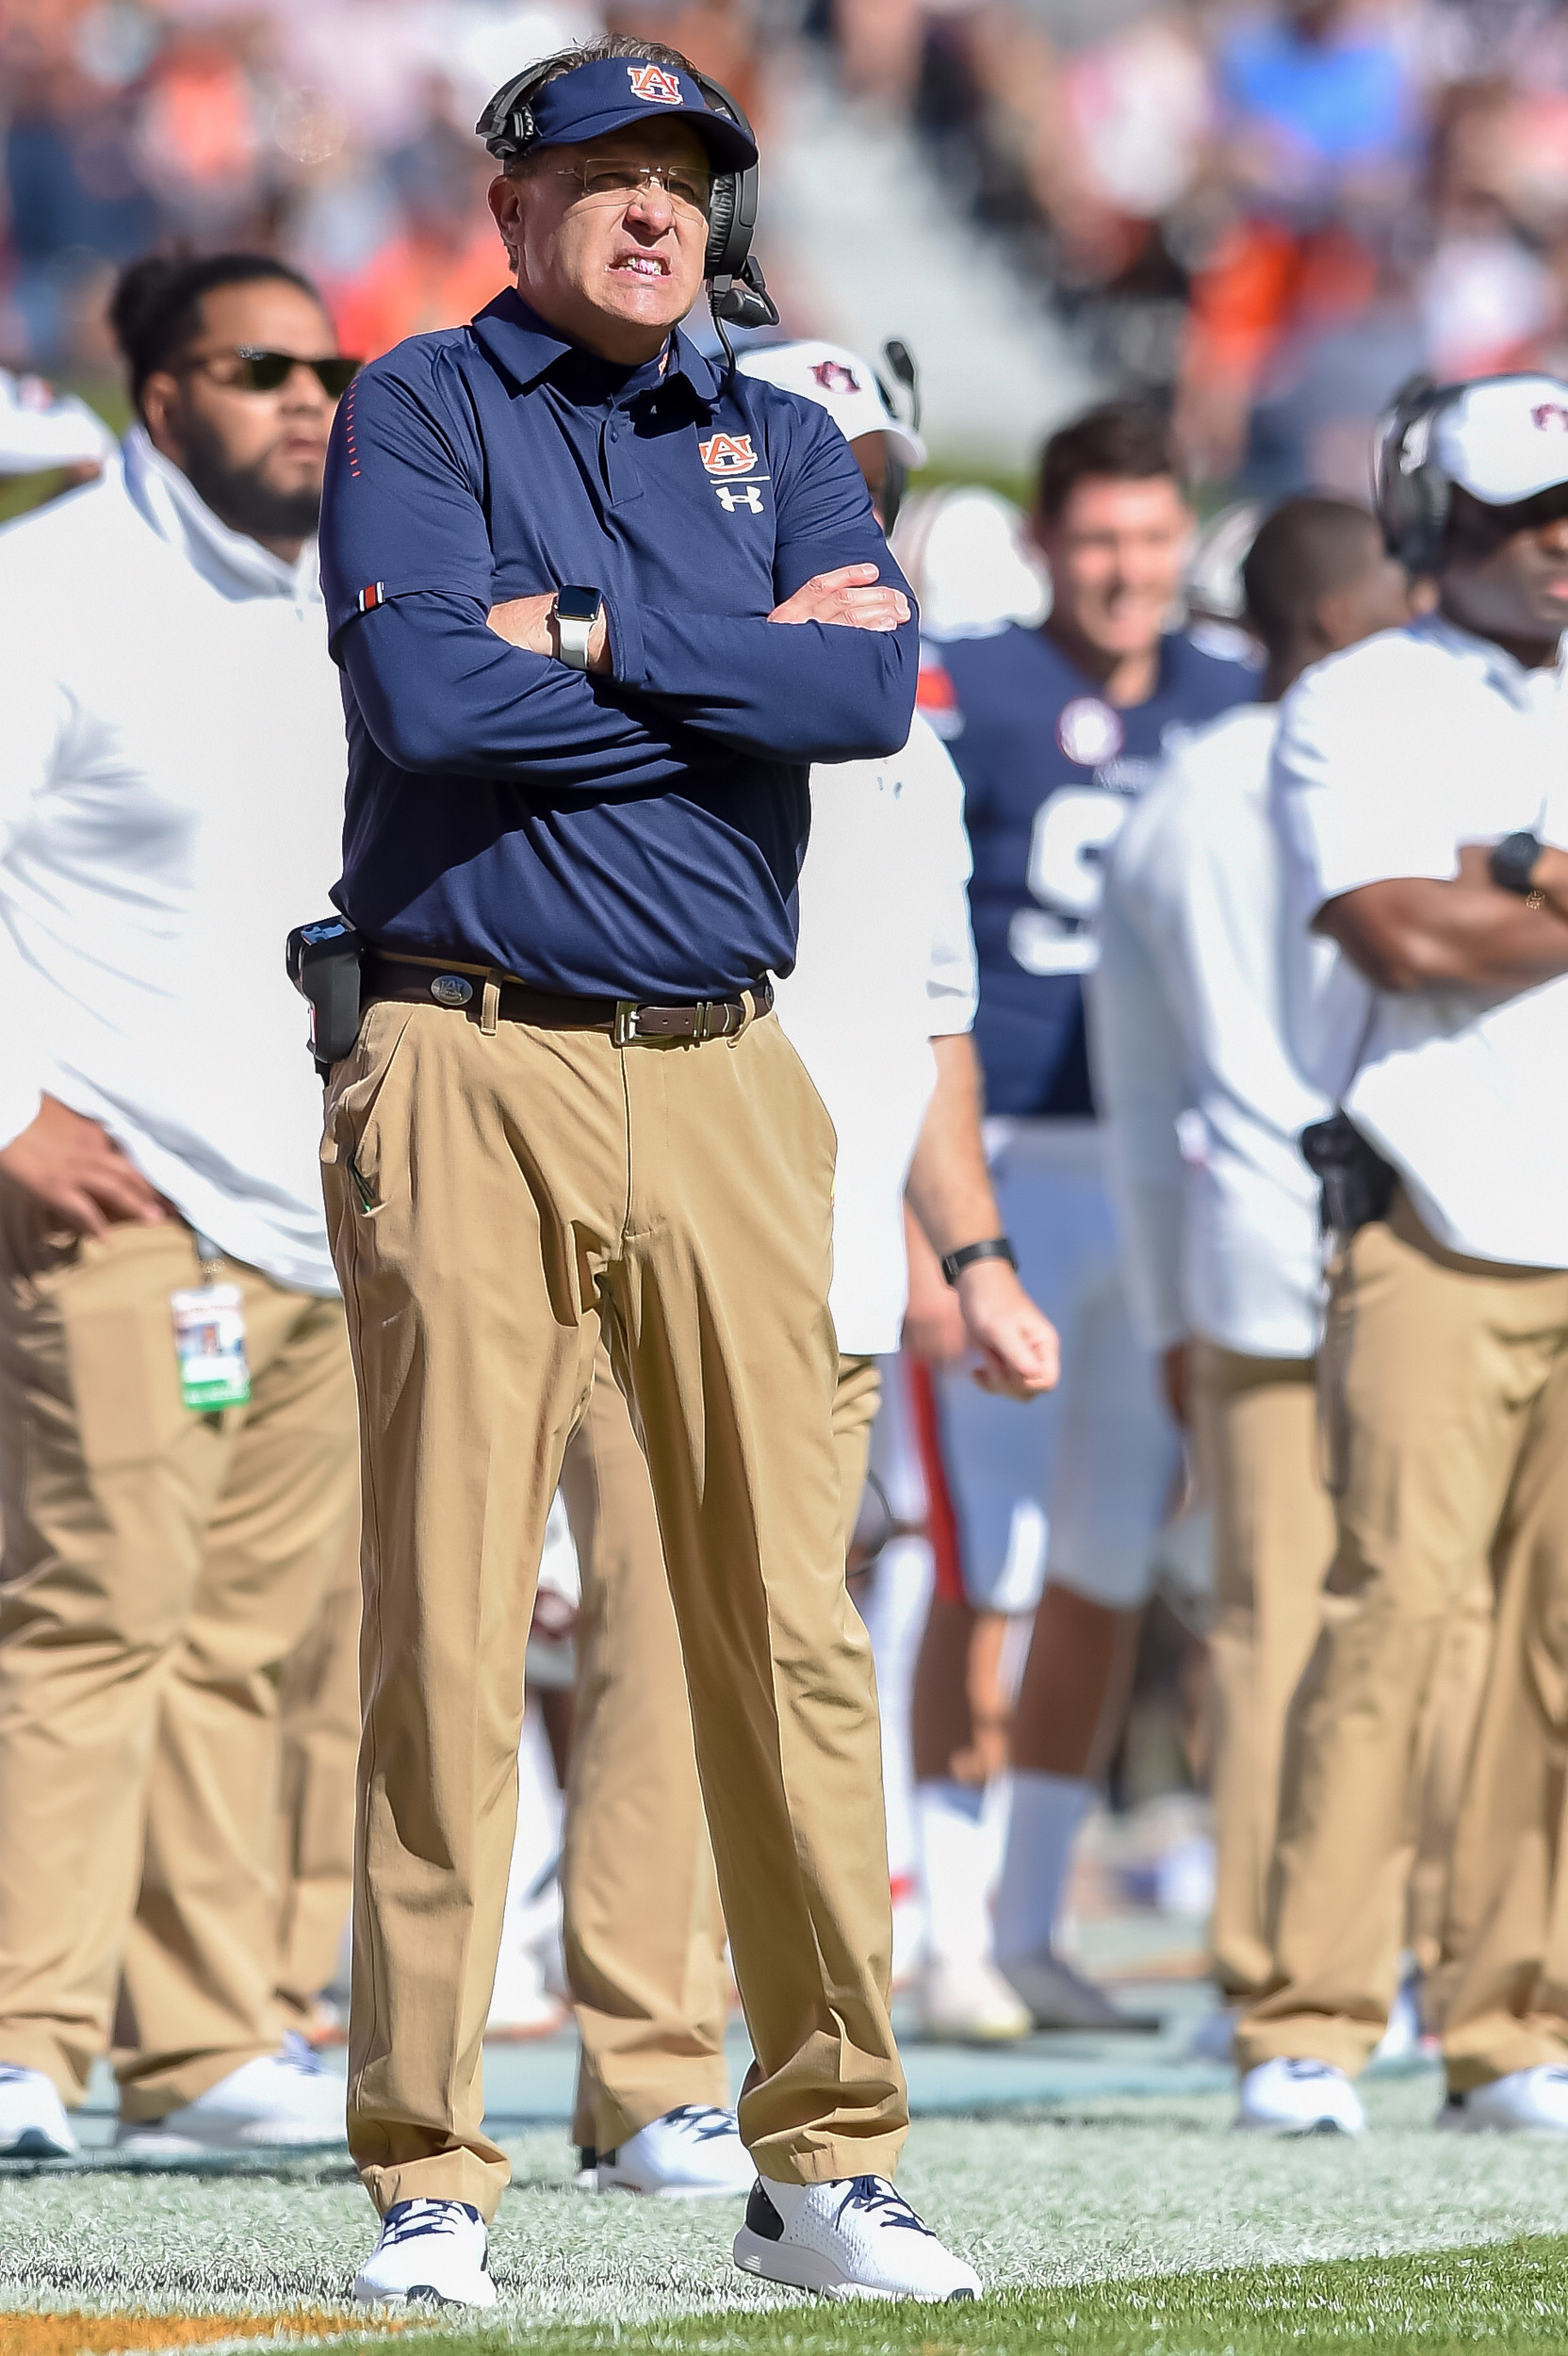 Auburn Tigers head coach Gus Malzahn looks on during the first half of an NCAA football game against the Texas A&M Aggies Saturday, November 3, 2018, at Jordan-Hare Stadium in Auburn, Ala. (Photo by Jeff Johnsey)